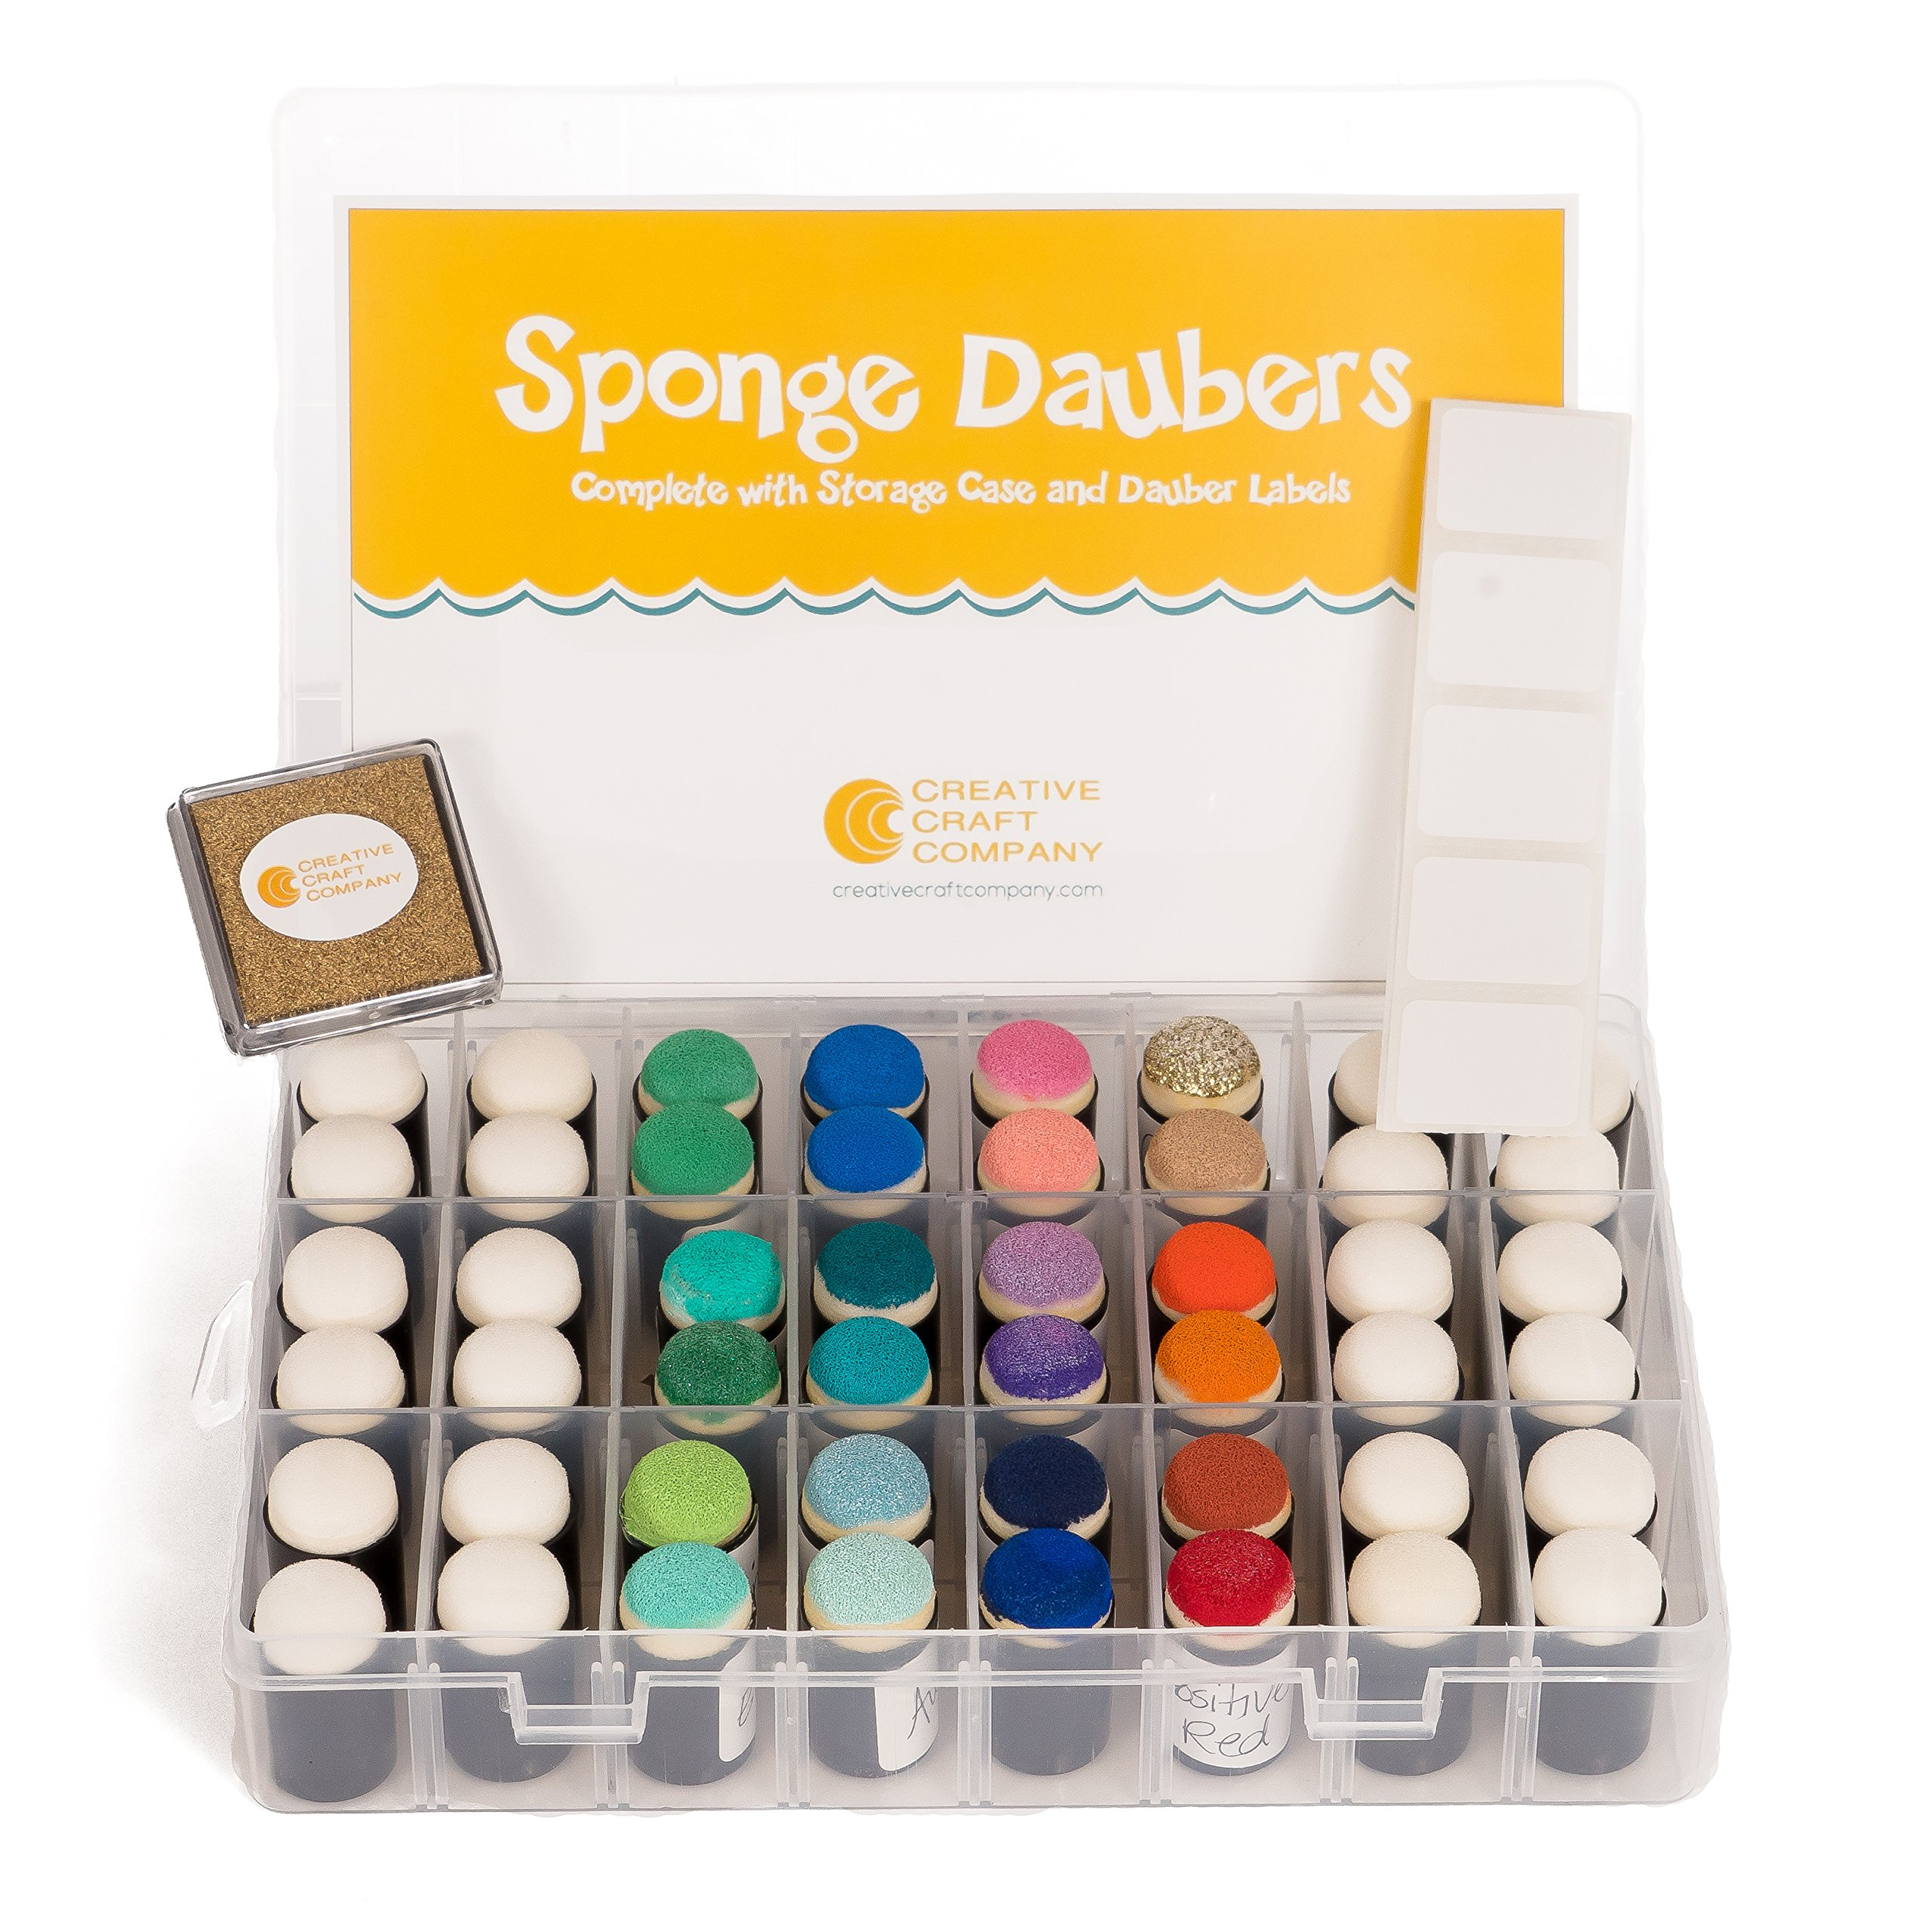 Creative Craft Company 48-Piece Sponge Daubers with 50 Labels, 1.5-Inch Square Gold Ink Pad and Storage Case by Creative Craft Company